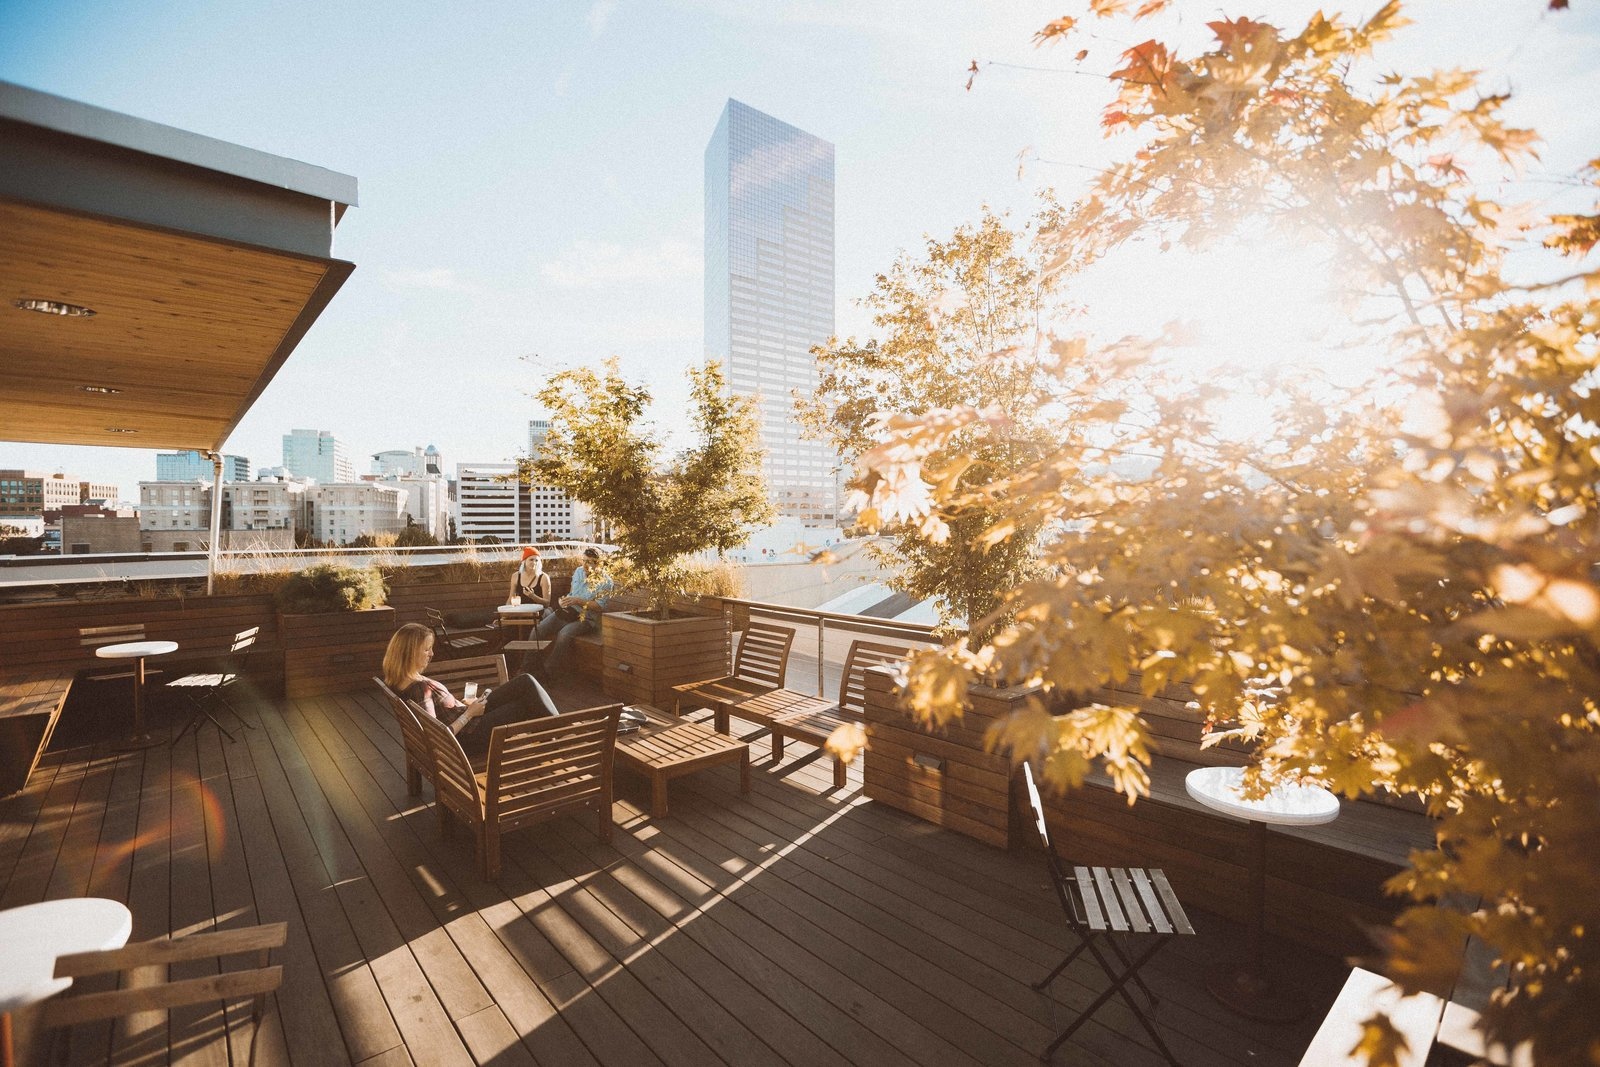 The rooftop terrace provides panoramic views to the surrounding neighborhood and city beyond.